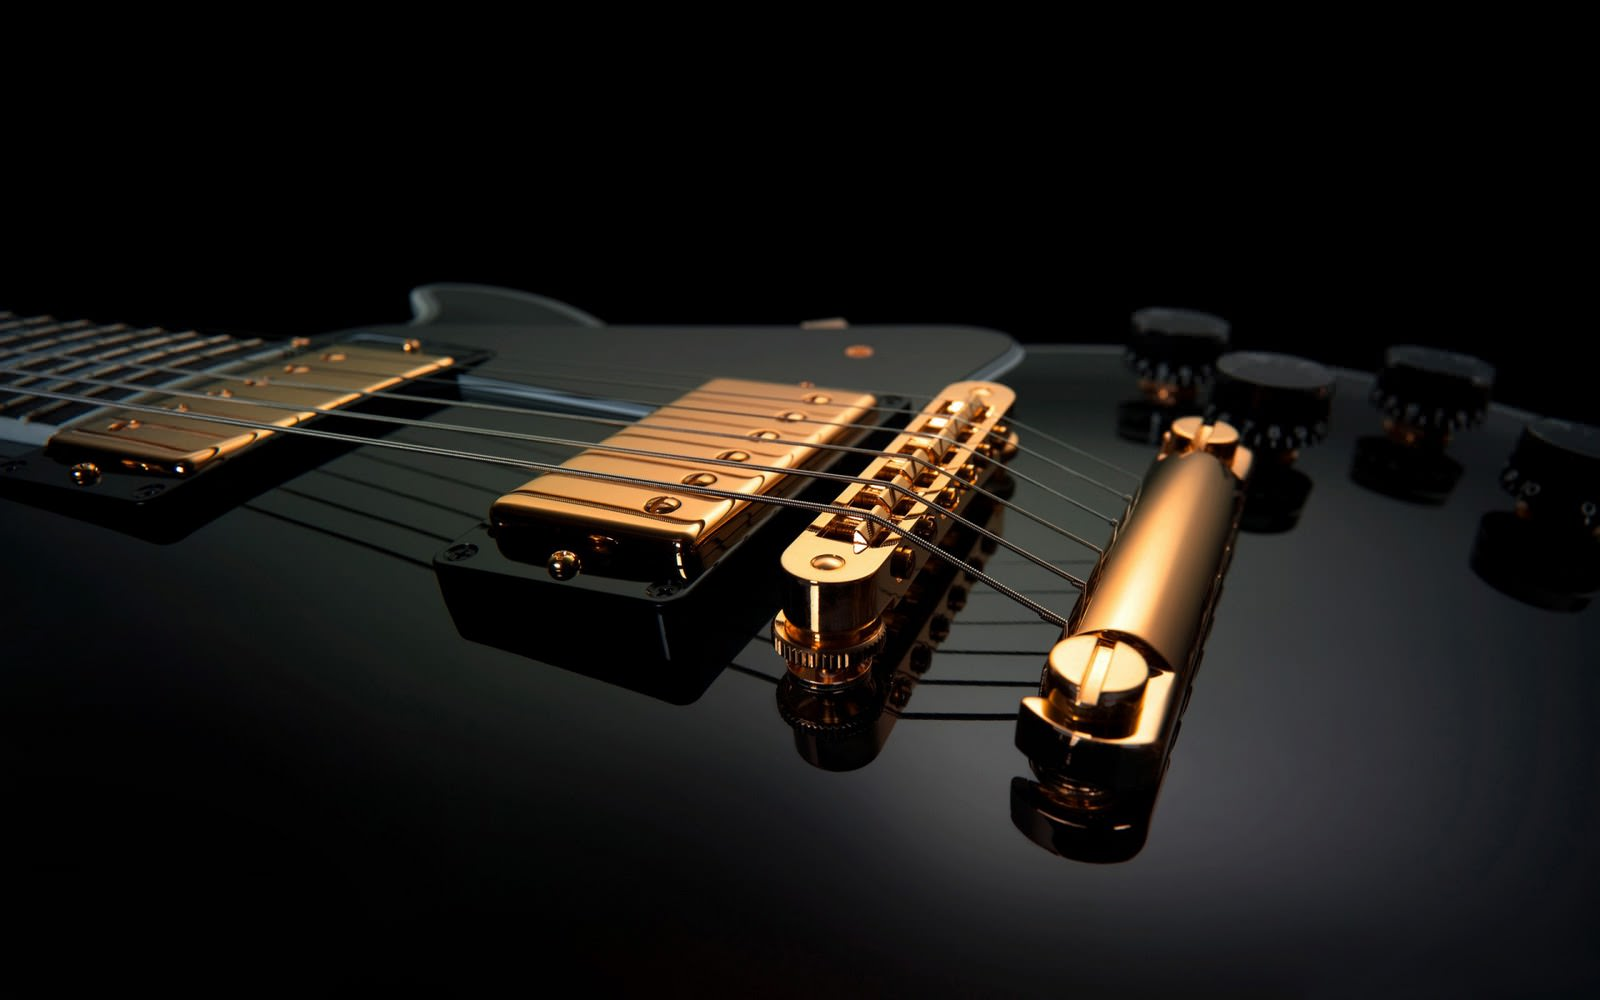 music-black-guitar-best-wallpaper-background-hd